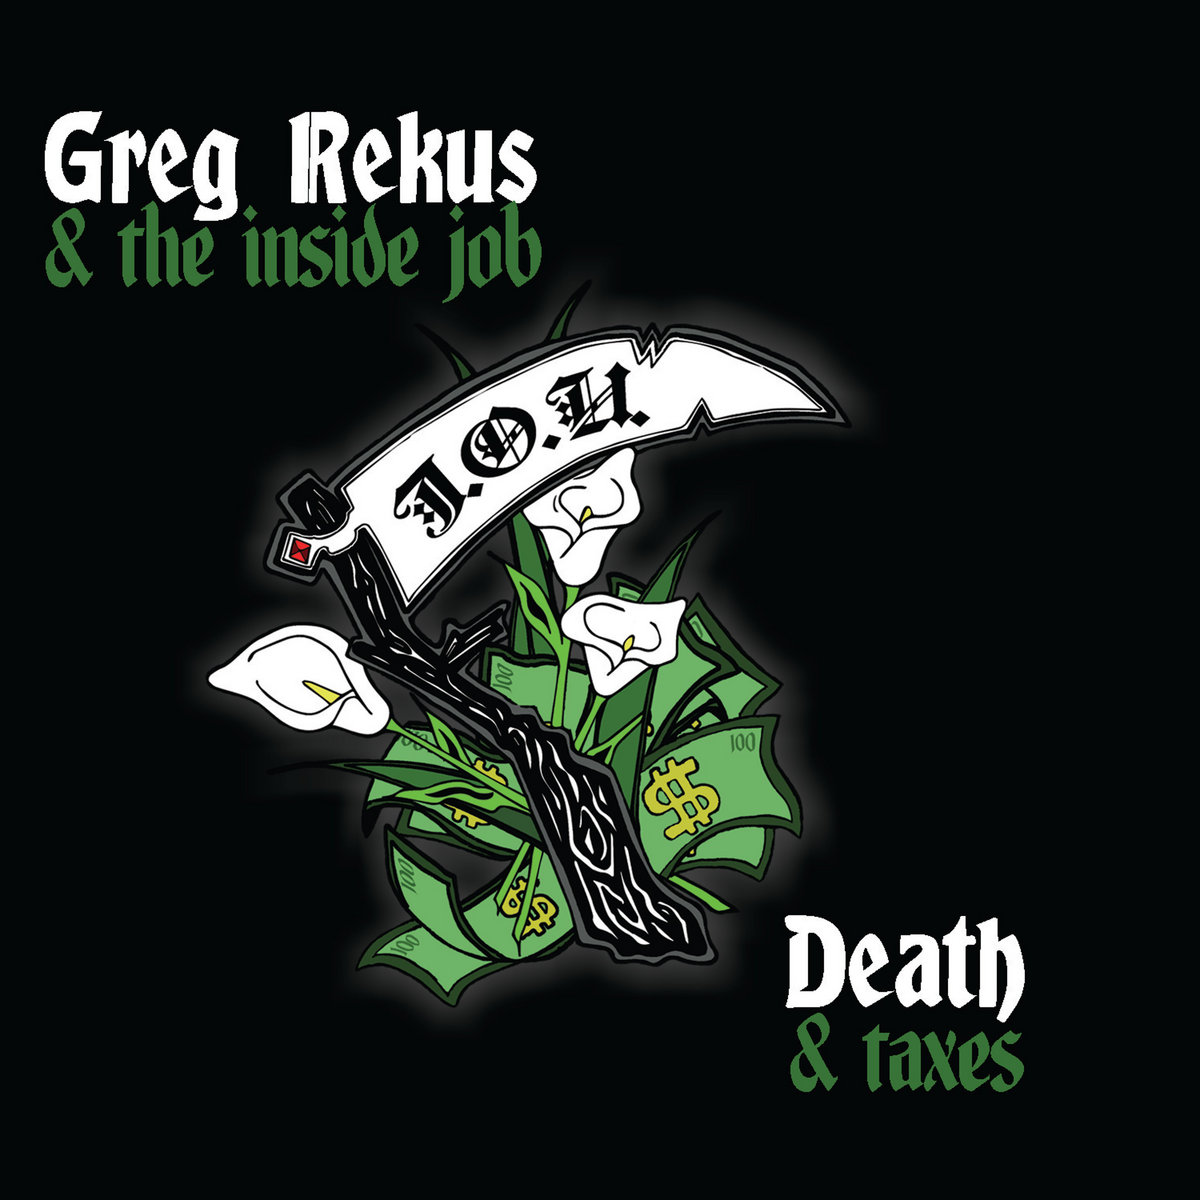 Greg Rekus & the Inside Job - Death & Taxes<br>DISTRO